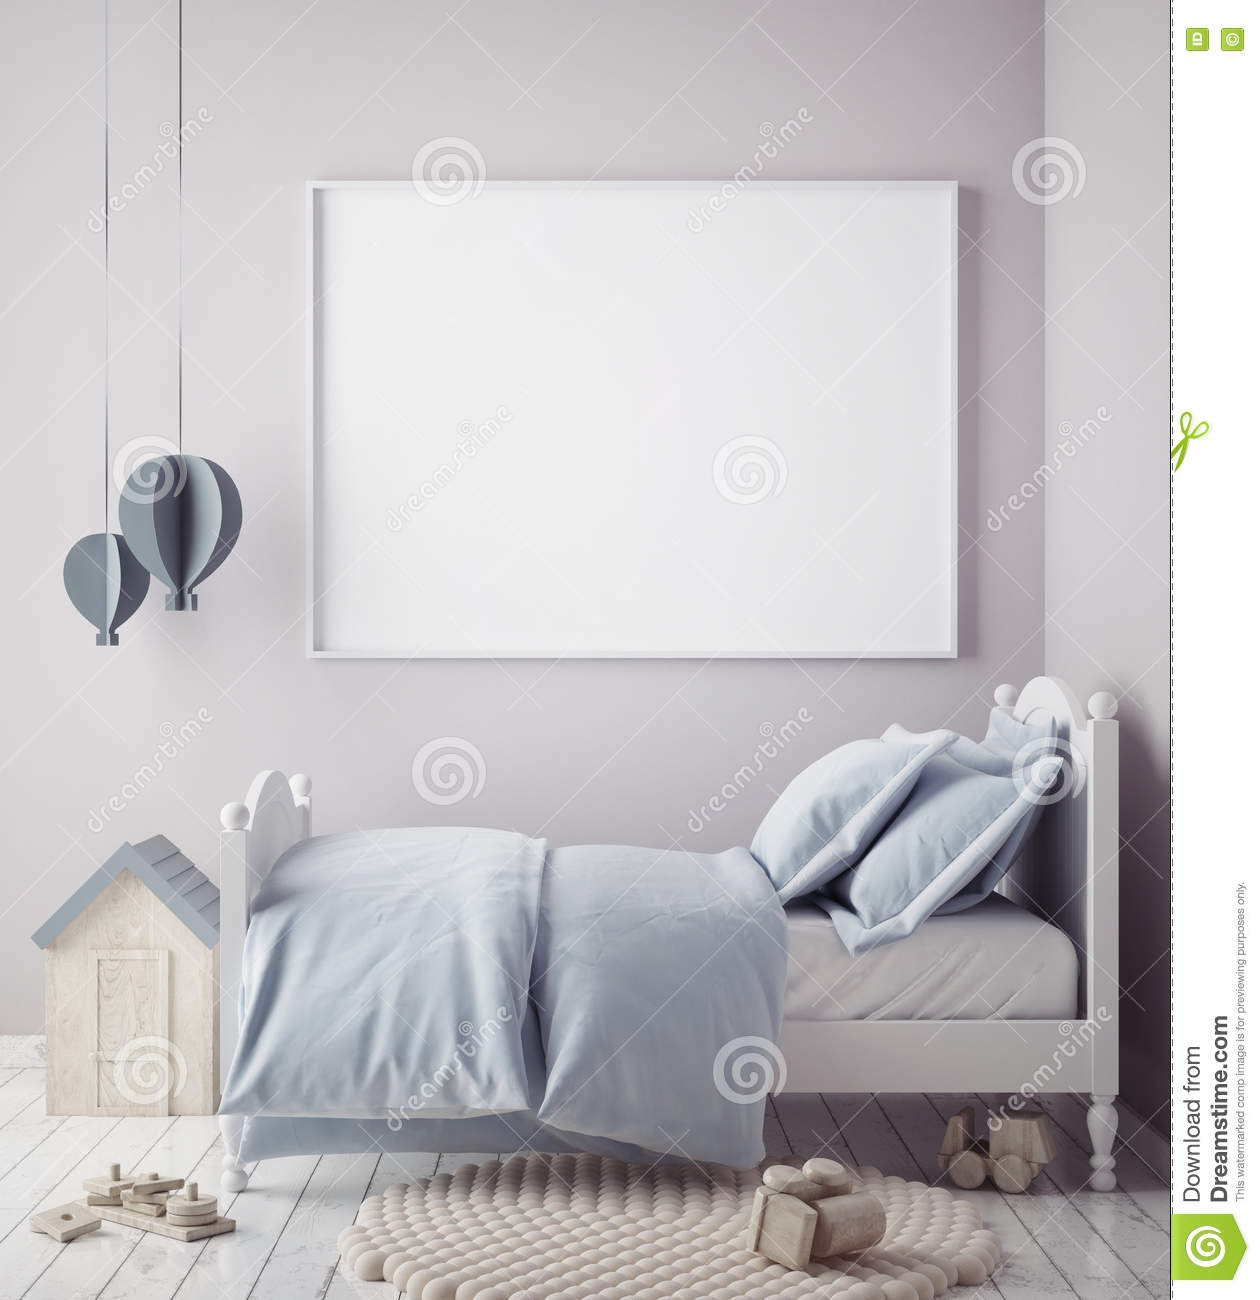 Mock up poster frame in baby boy room, scandinavian style interior background